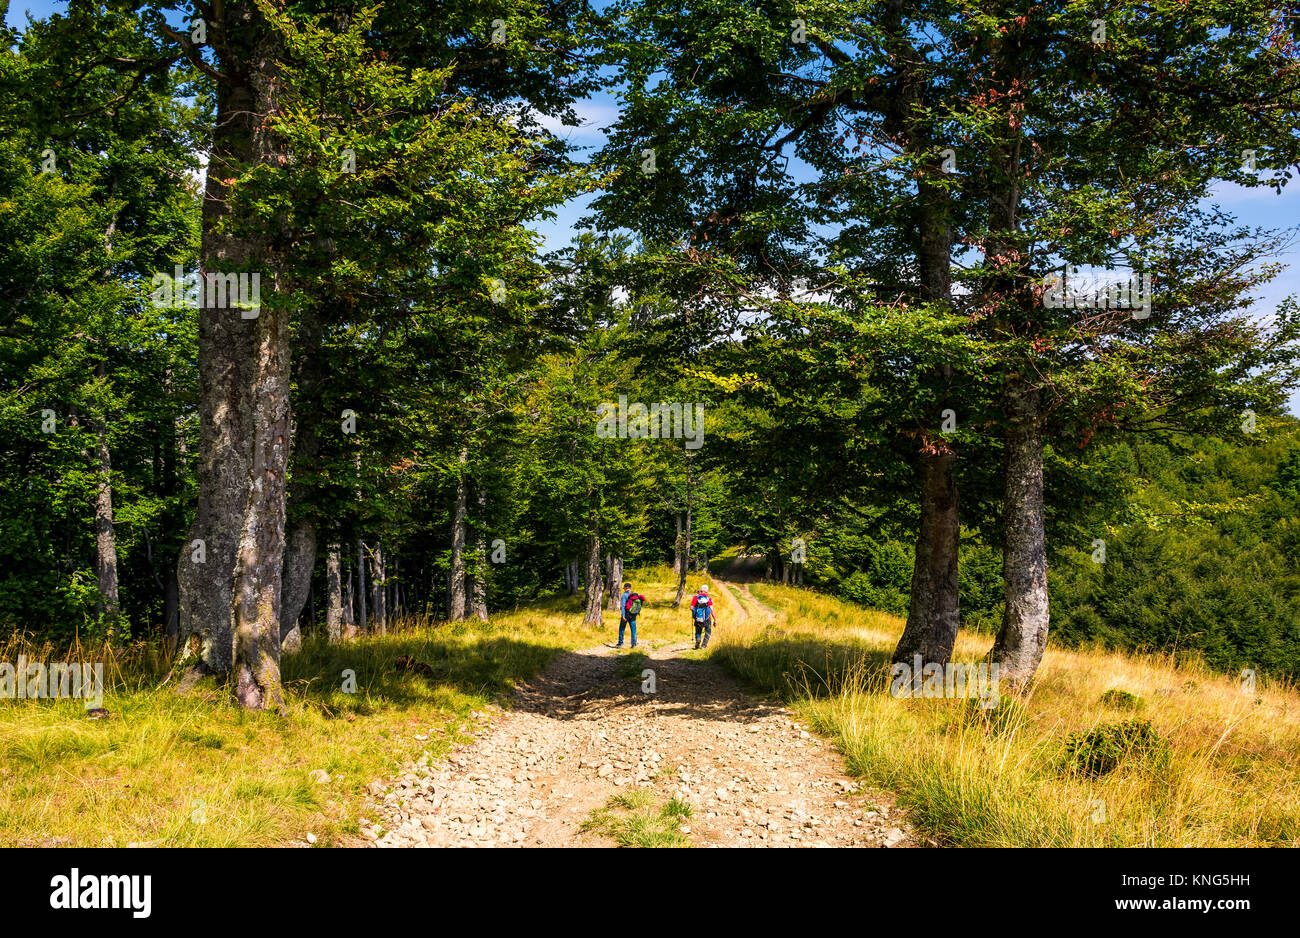 tourists on a dirt road through Primeval Beech Forests of the Carpathians. gorgeous nature scenery in summer Stock Photo